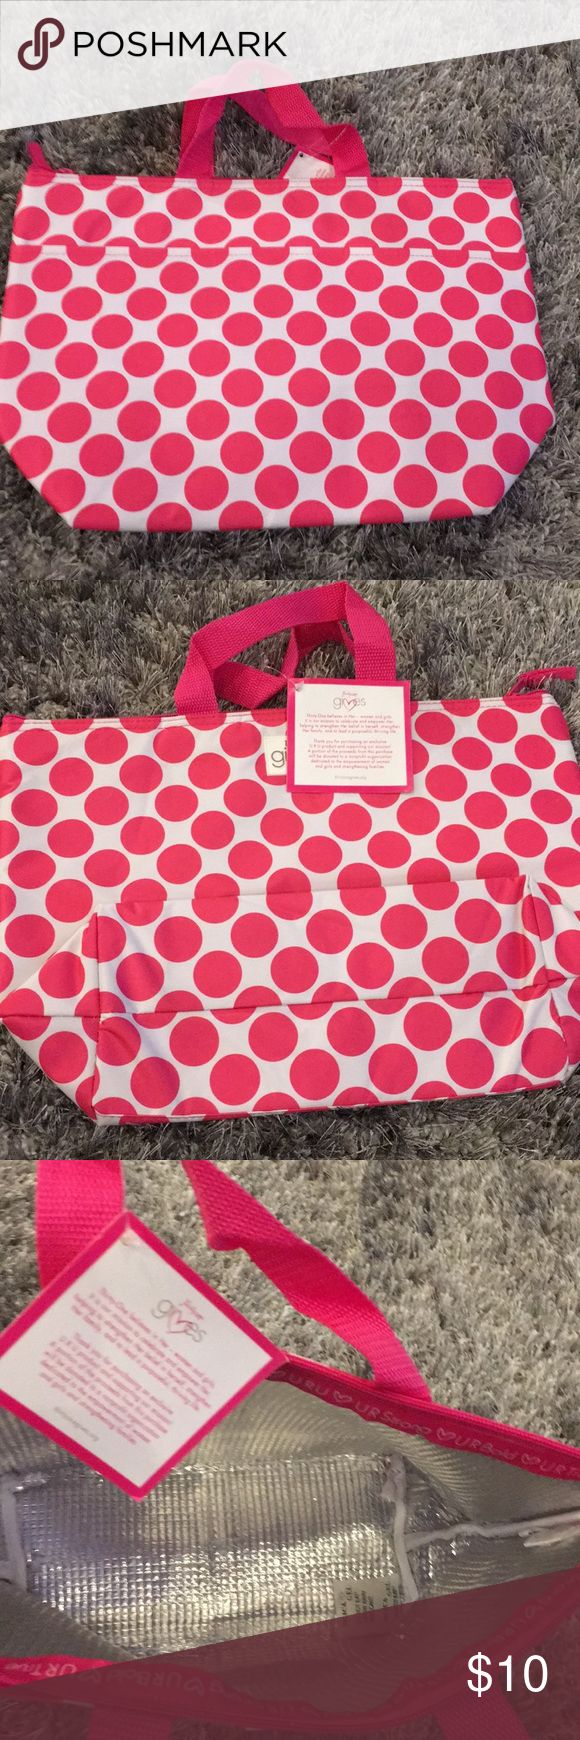 Thirty-one lunch bag Hot pink polkadots. New with tags, thermal lunch bag L 9.5 inches H 9.5 in W 4.5 inches Thirty-one Bags Travel Bags